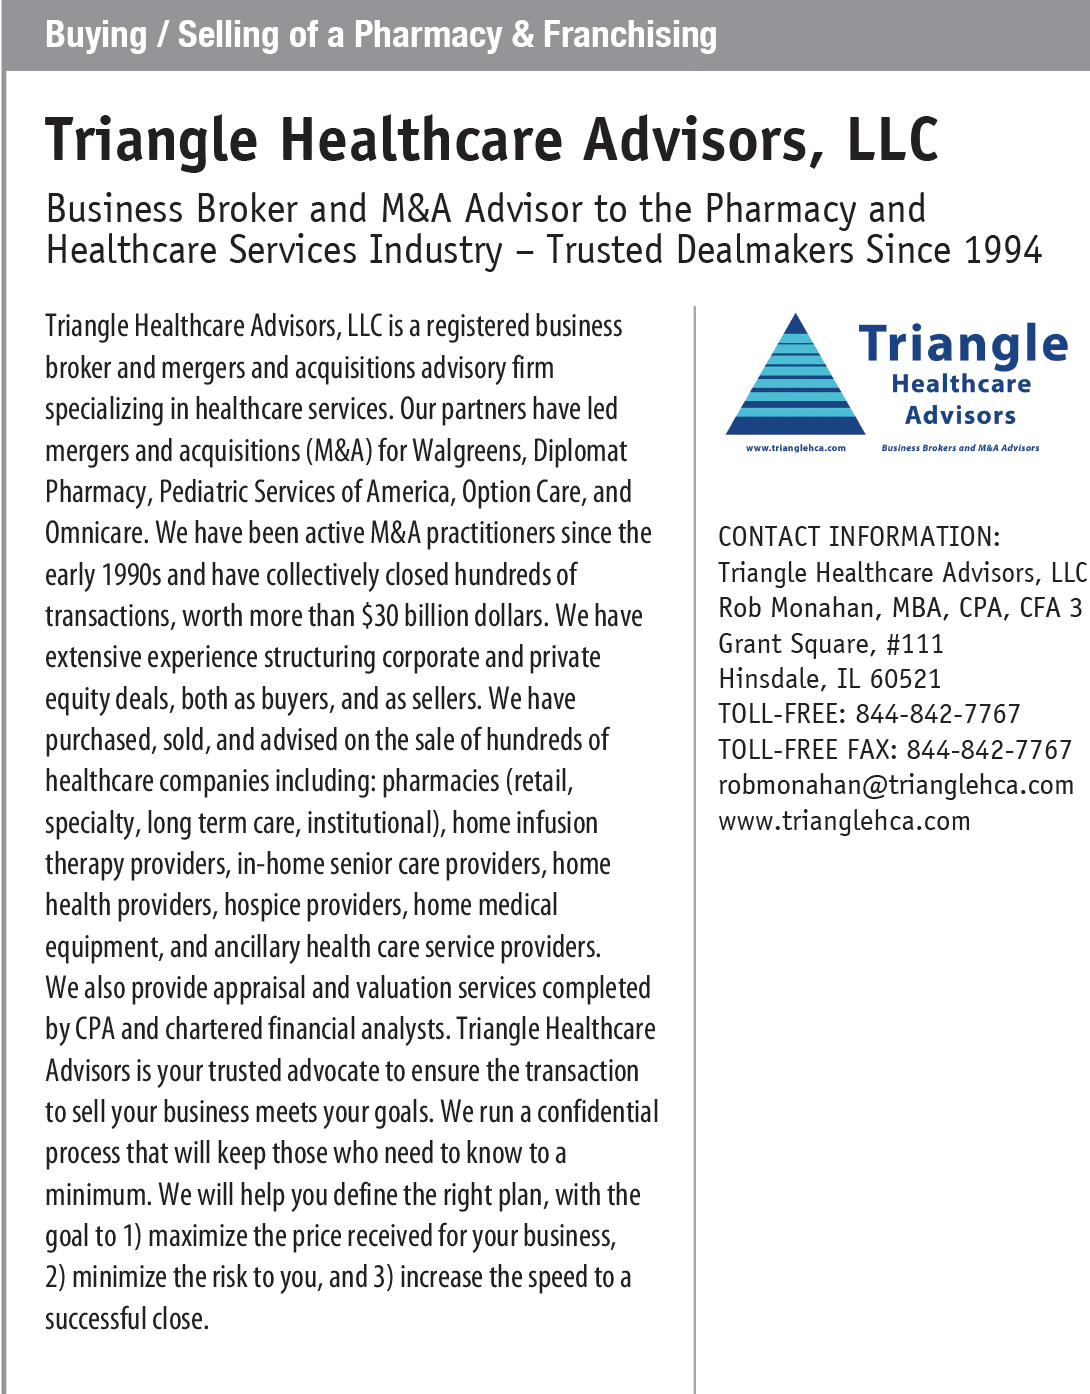 PROFILE_Buying-_-Selling-of-a-Pharmacy-_-Franchising---Triangle-Healthcare-Advisors,-LLC.jpg